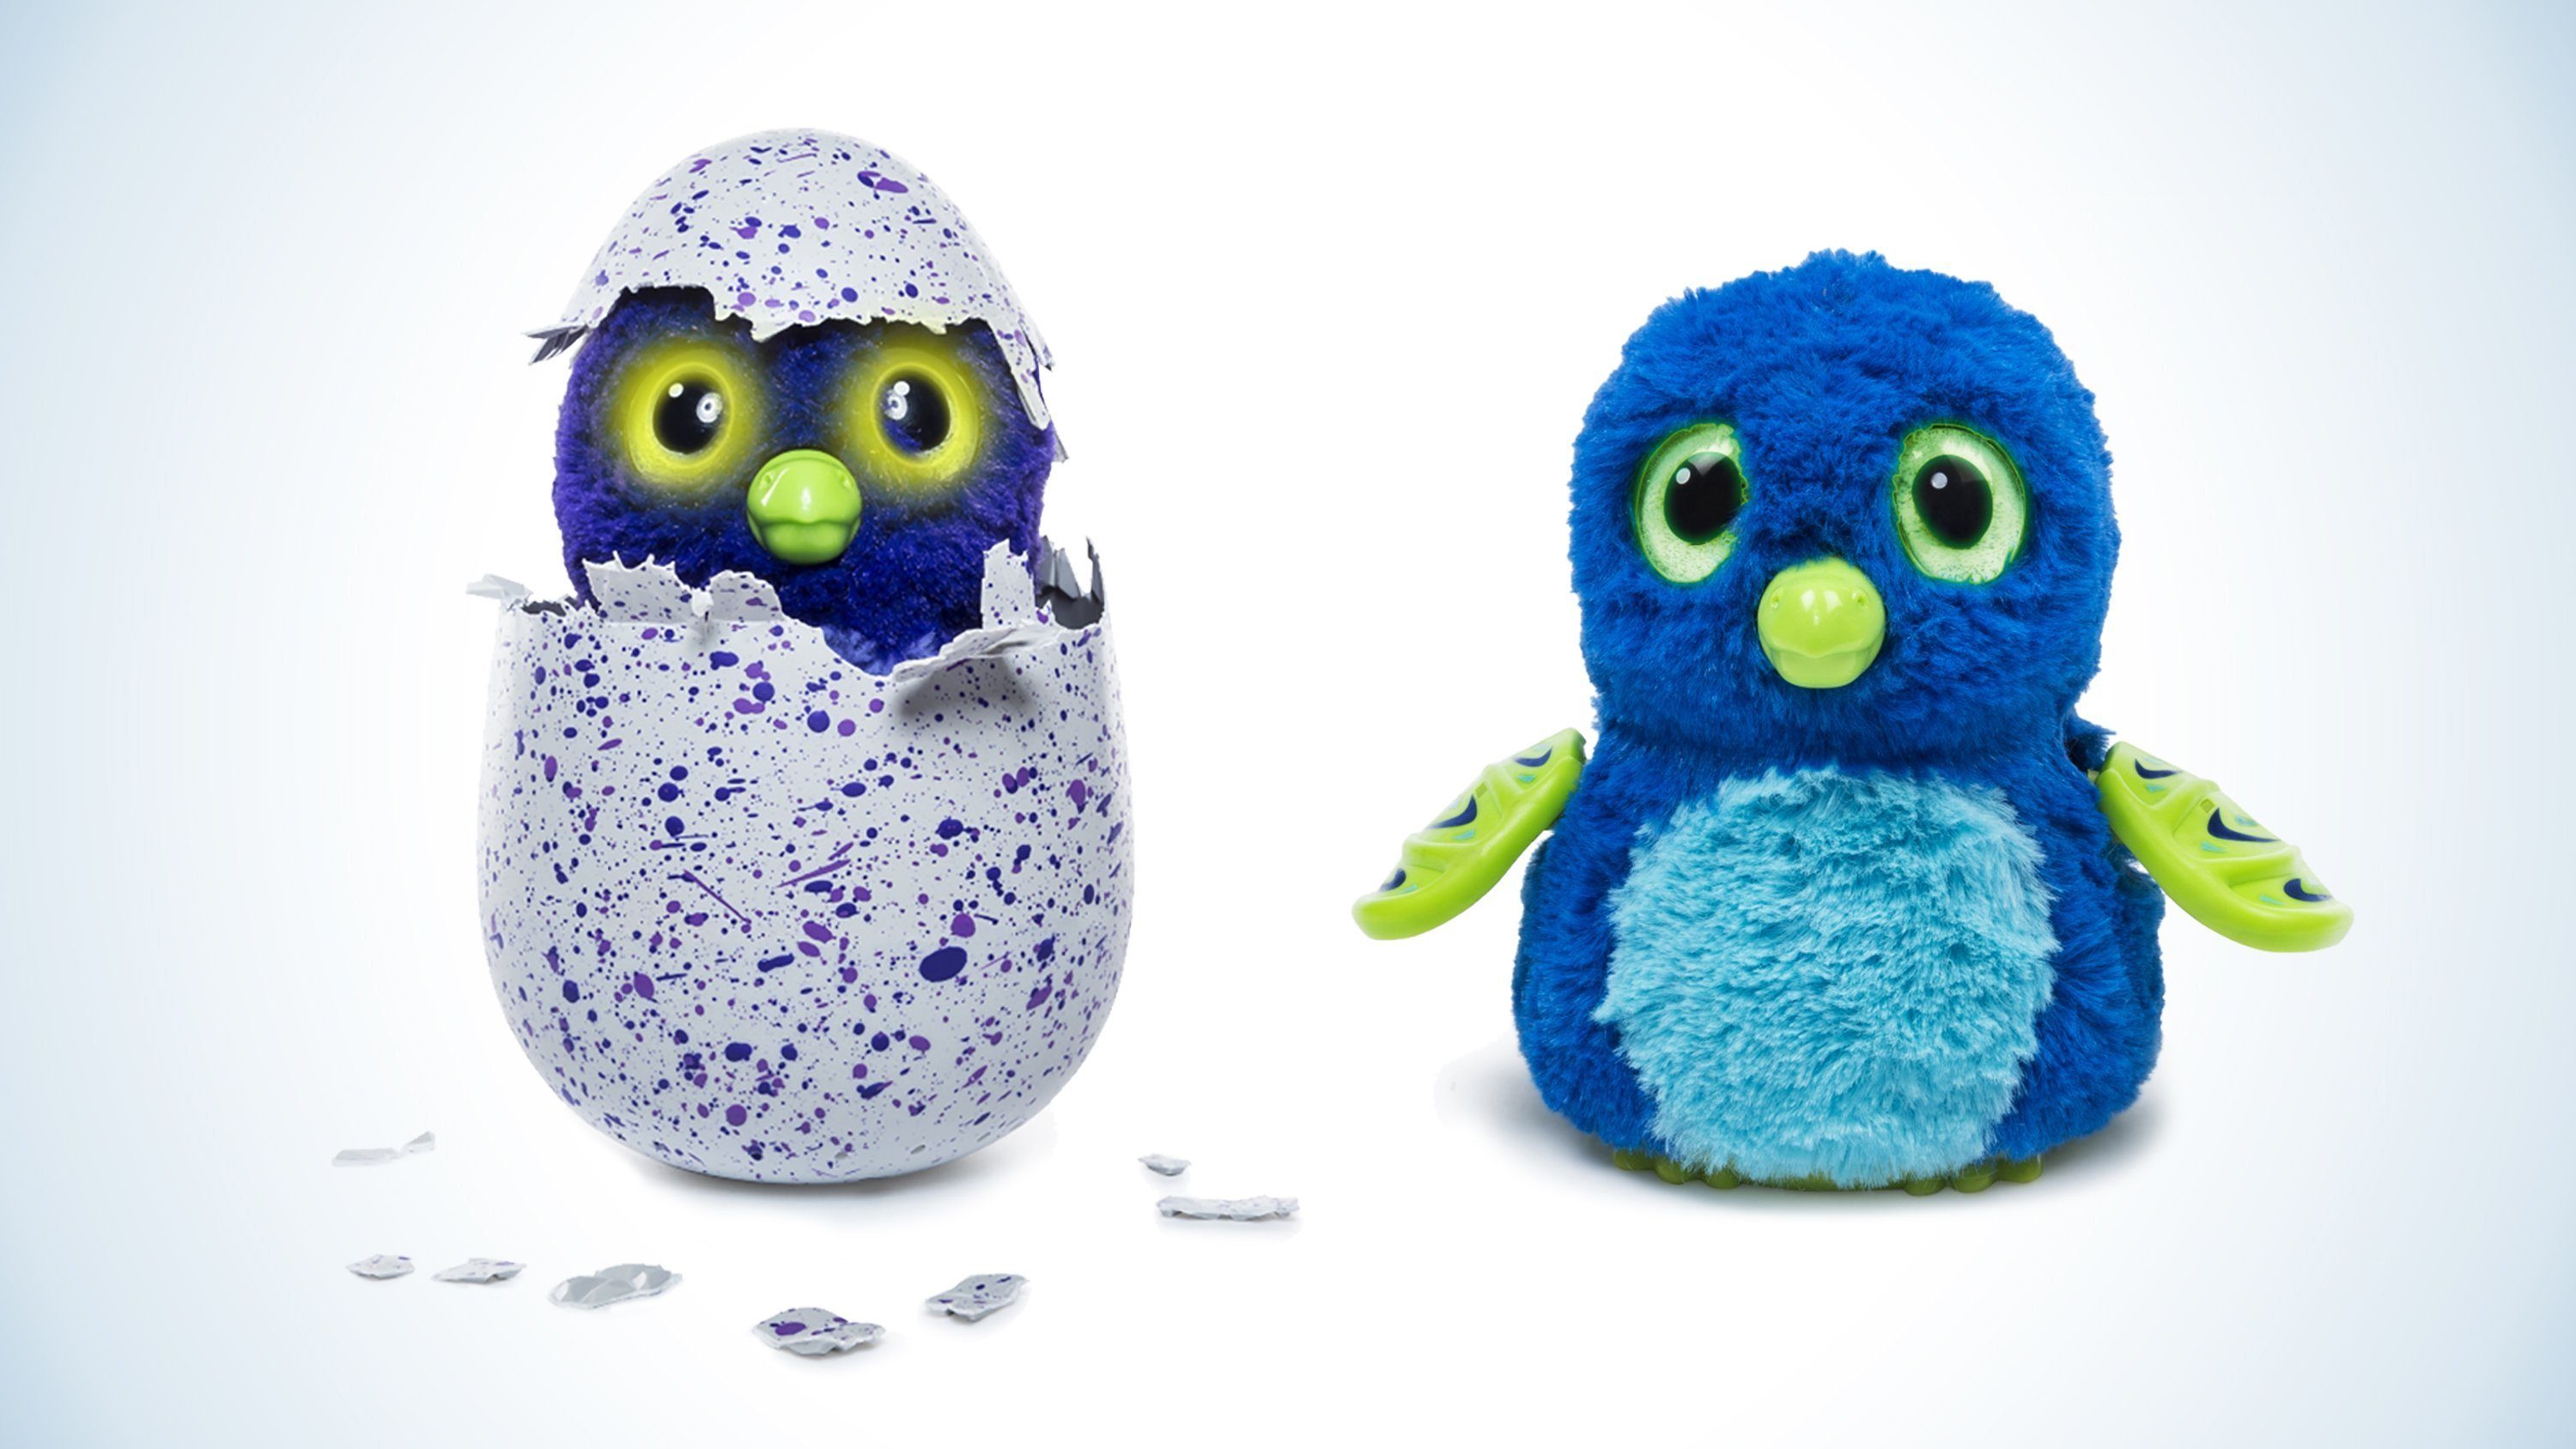 The hits keep coming for Hatchimals. Some parents are claiming the most-hyped toy of the season has a potty mouth. (CNN)